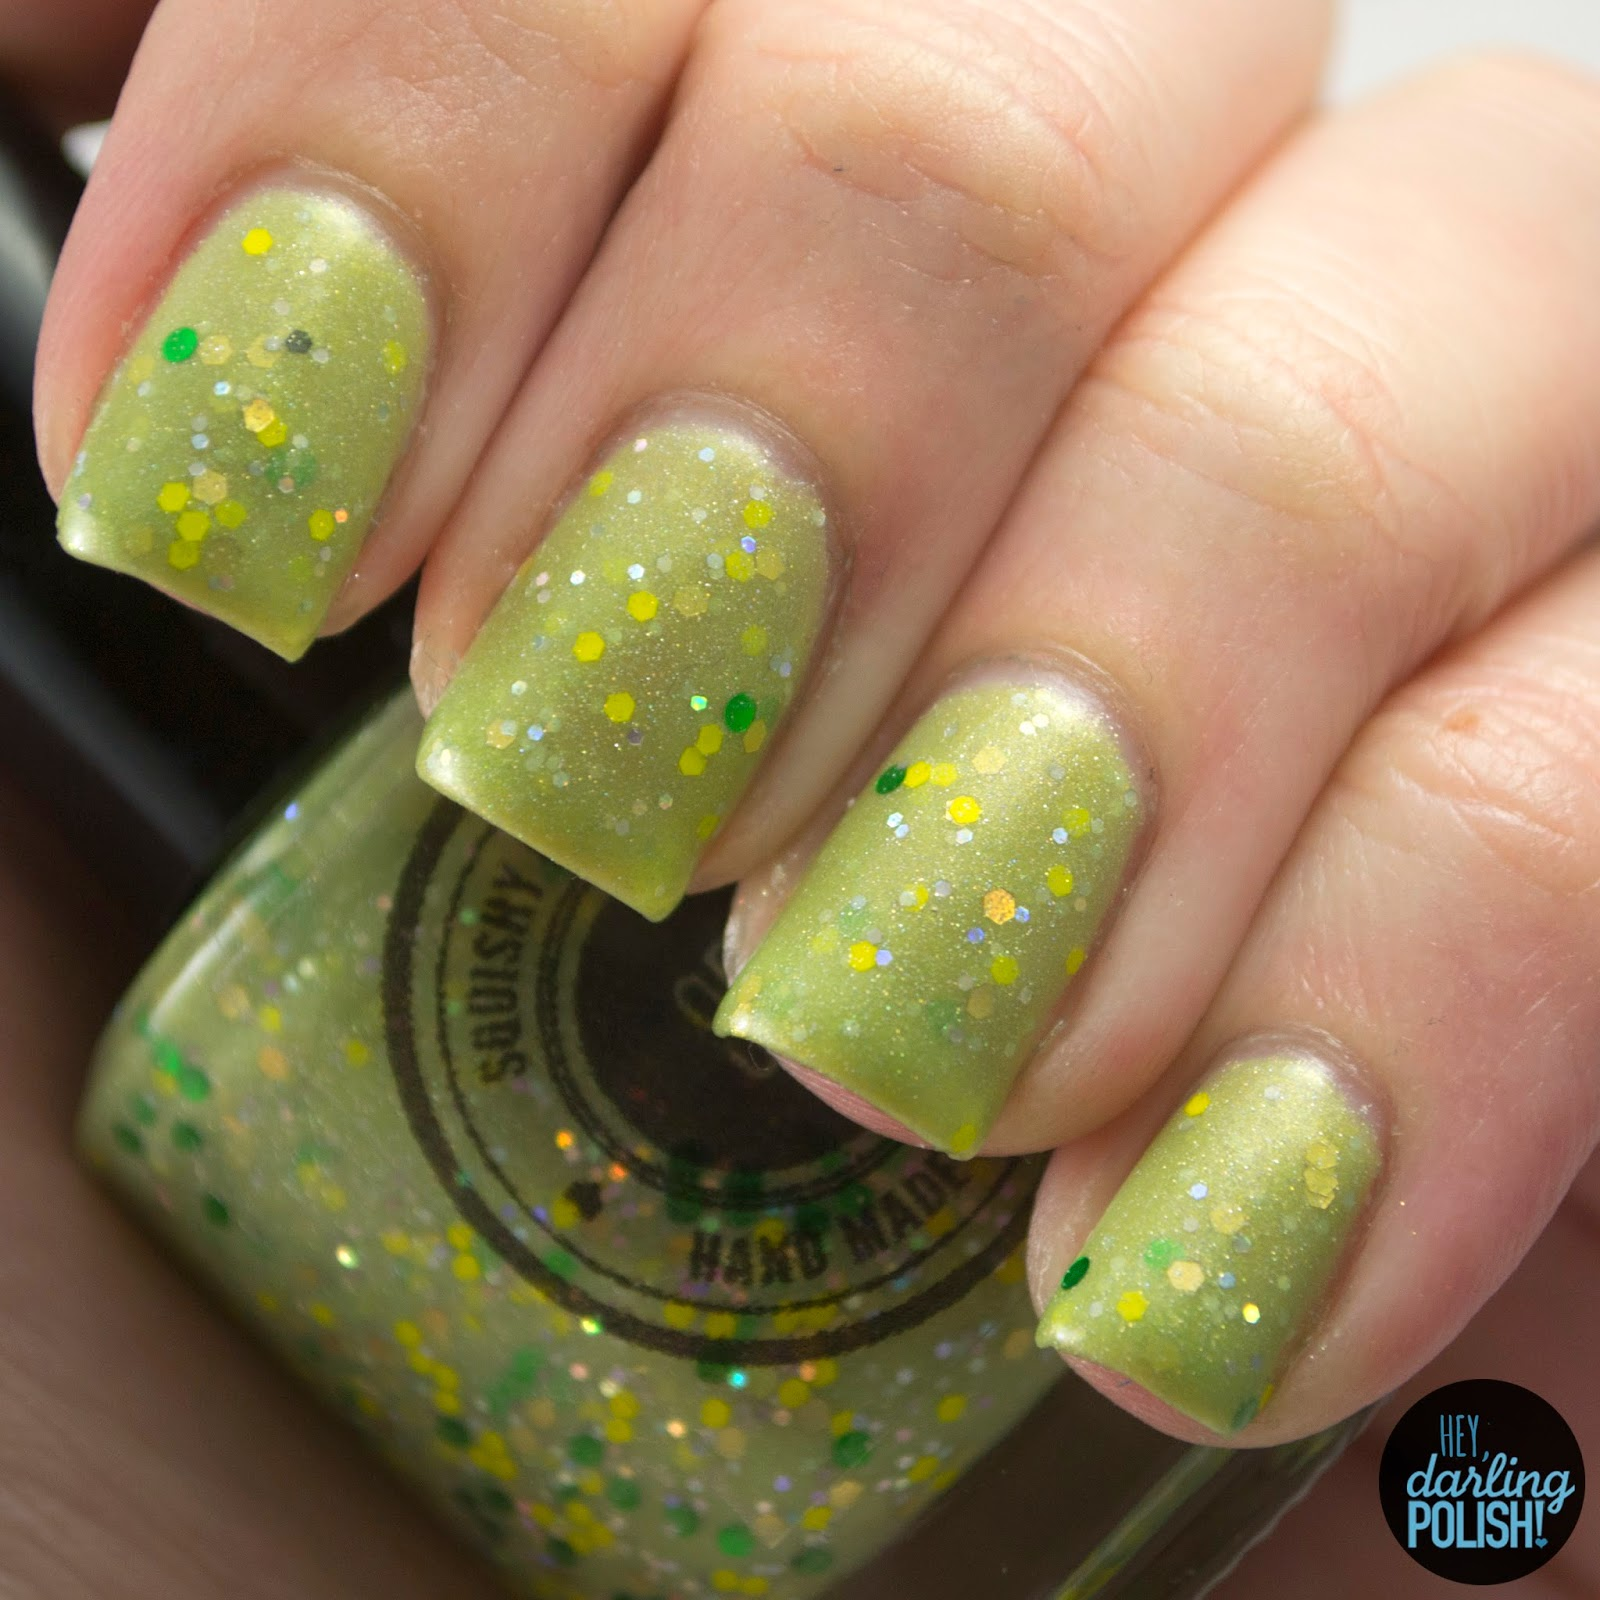 green, electric eel, glitter, nails, nail polish, indie, indie polish, indie nail polish, hey darling polish, swatches, swatching, squishy face polish